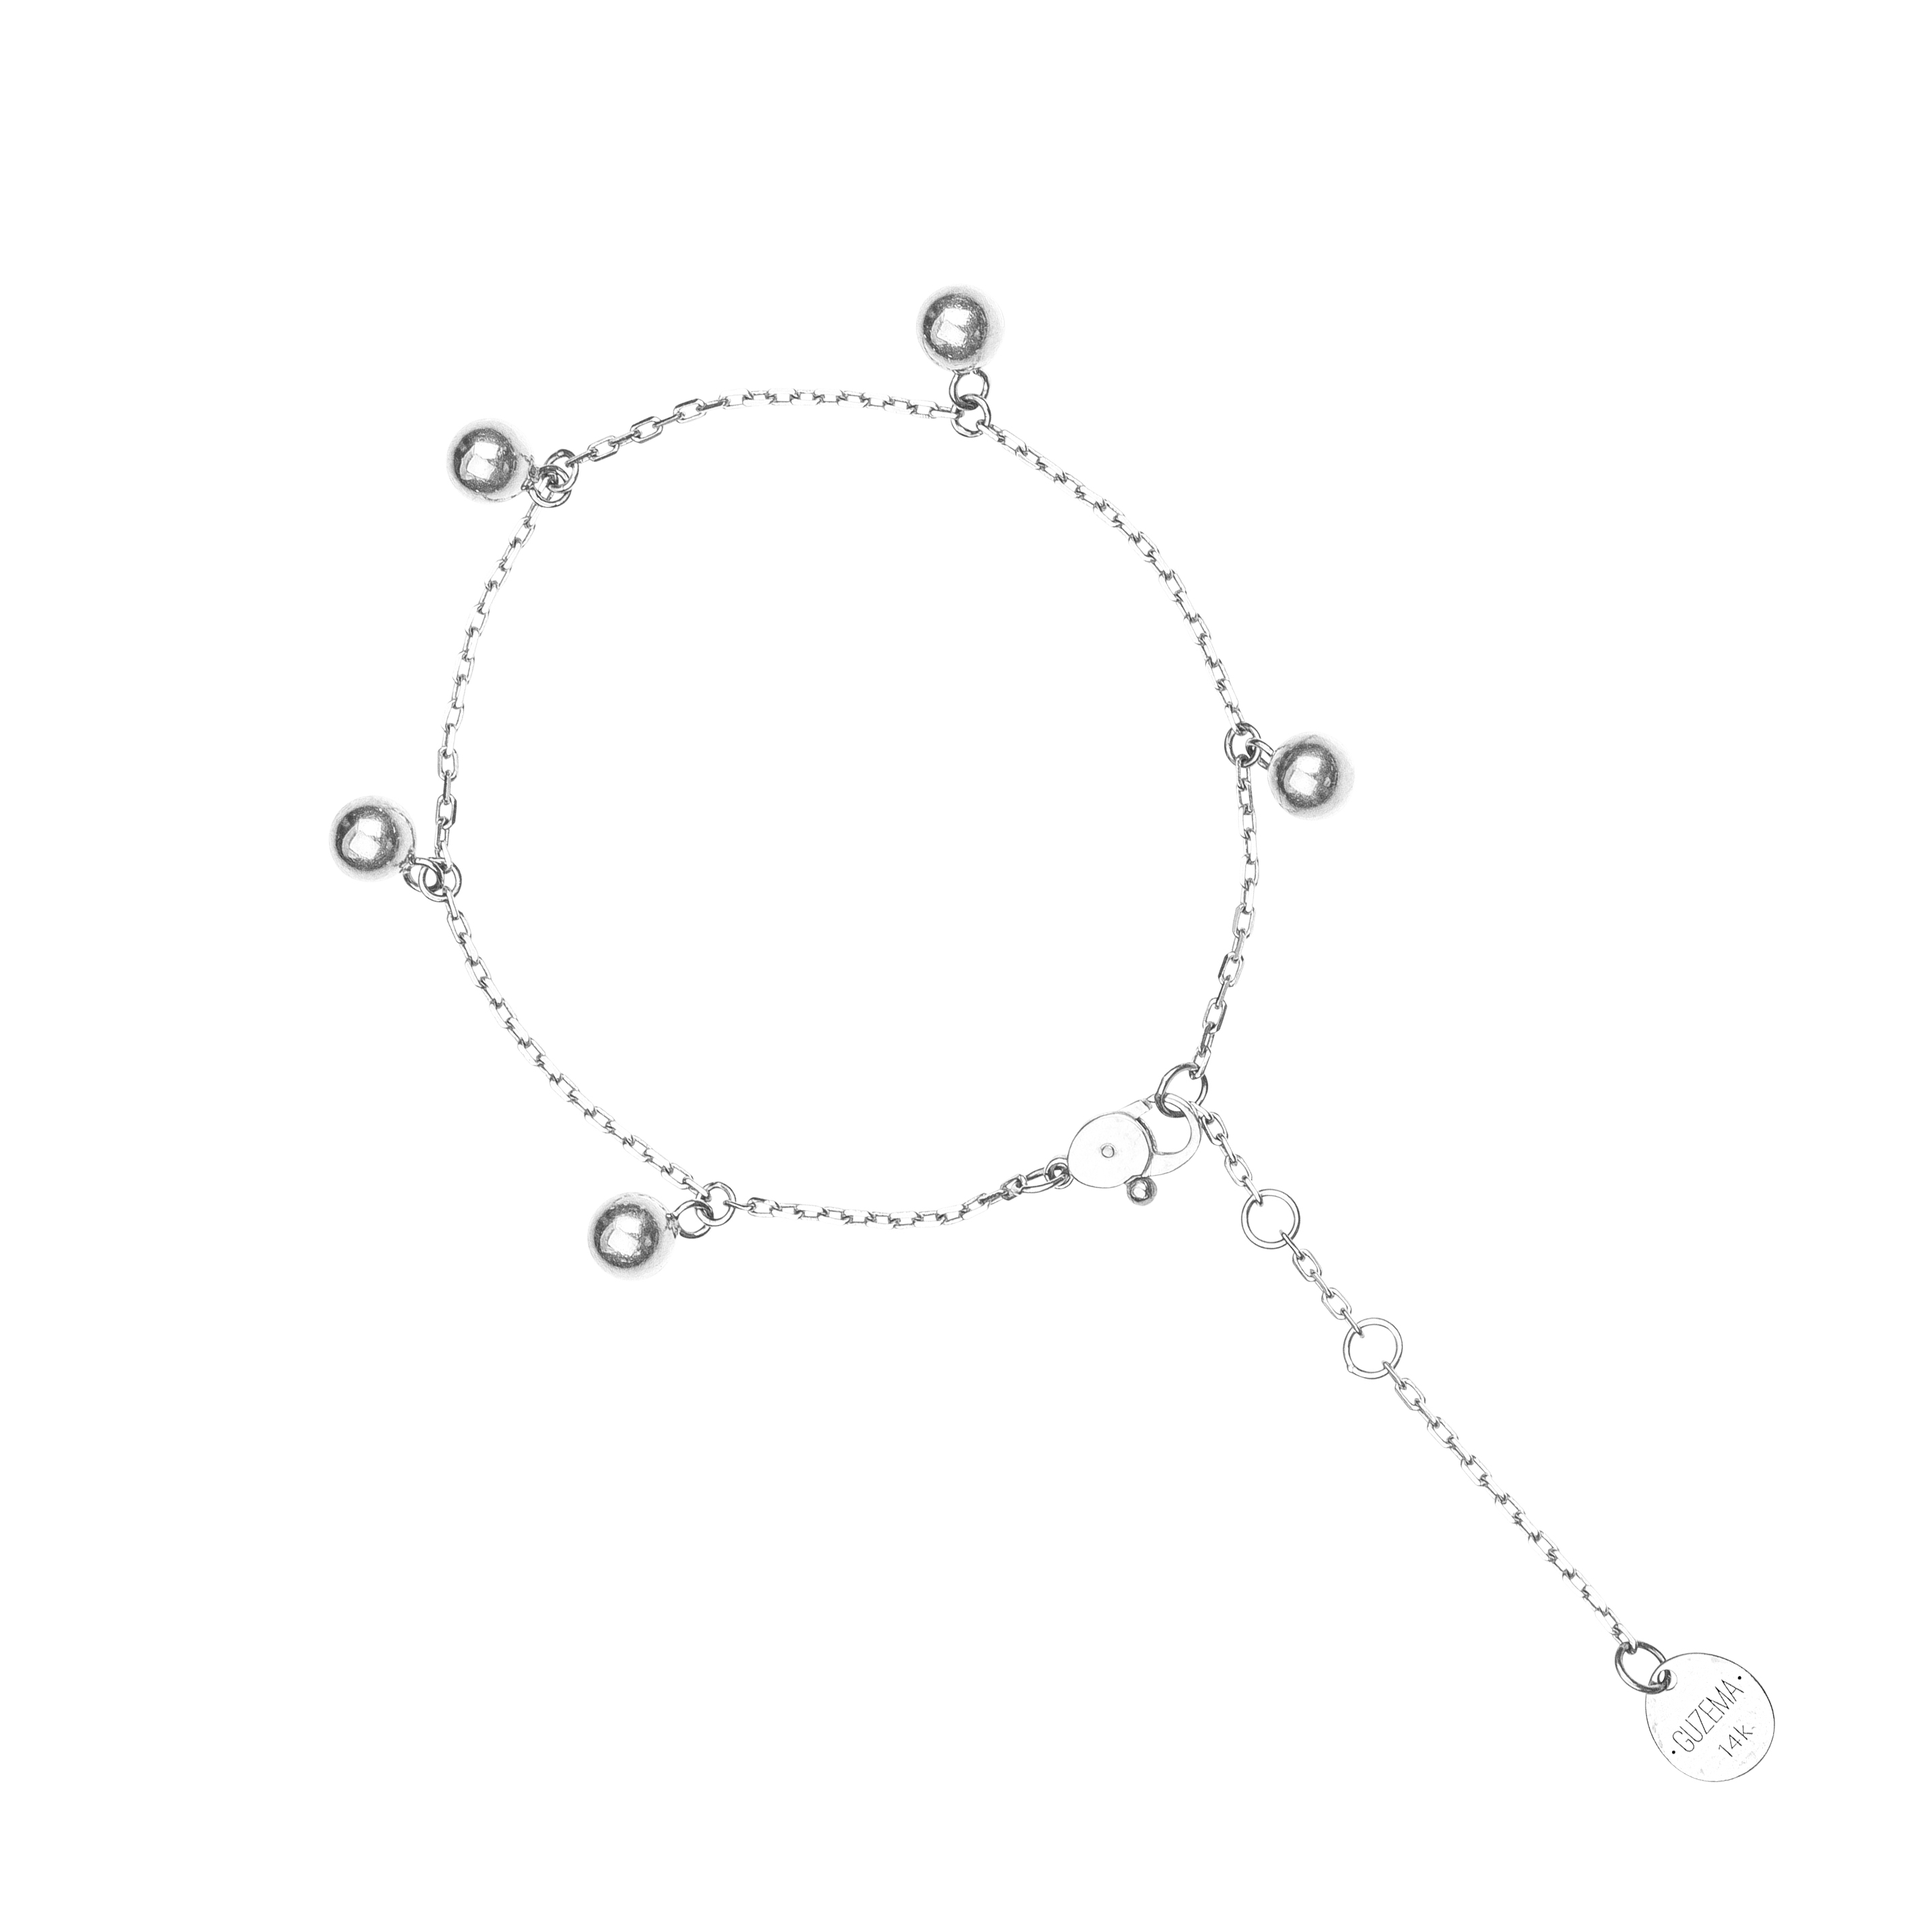 5 Orb Anklet - White Gold by Guzema Fine Jewellery on curated-crowd.com